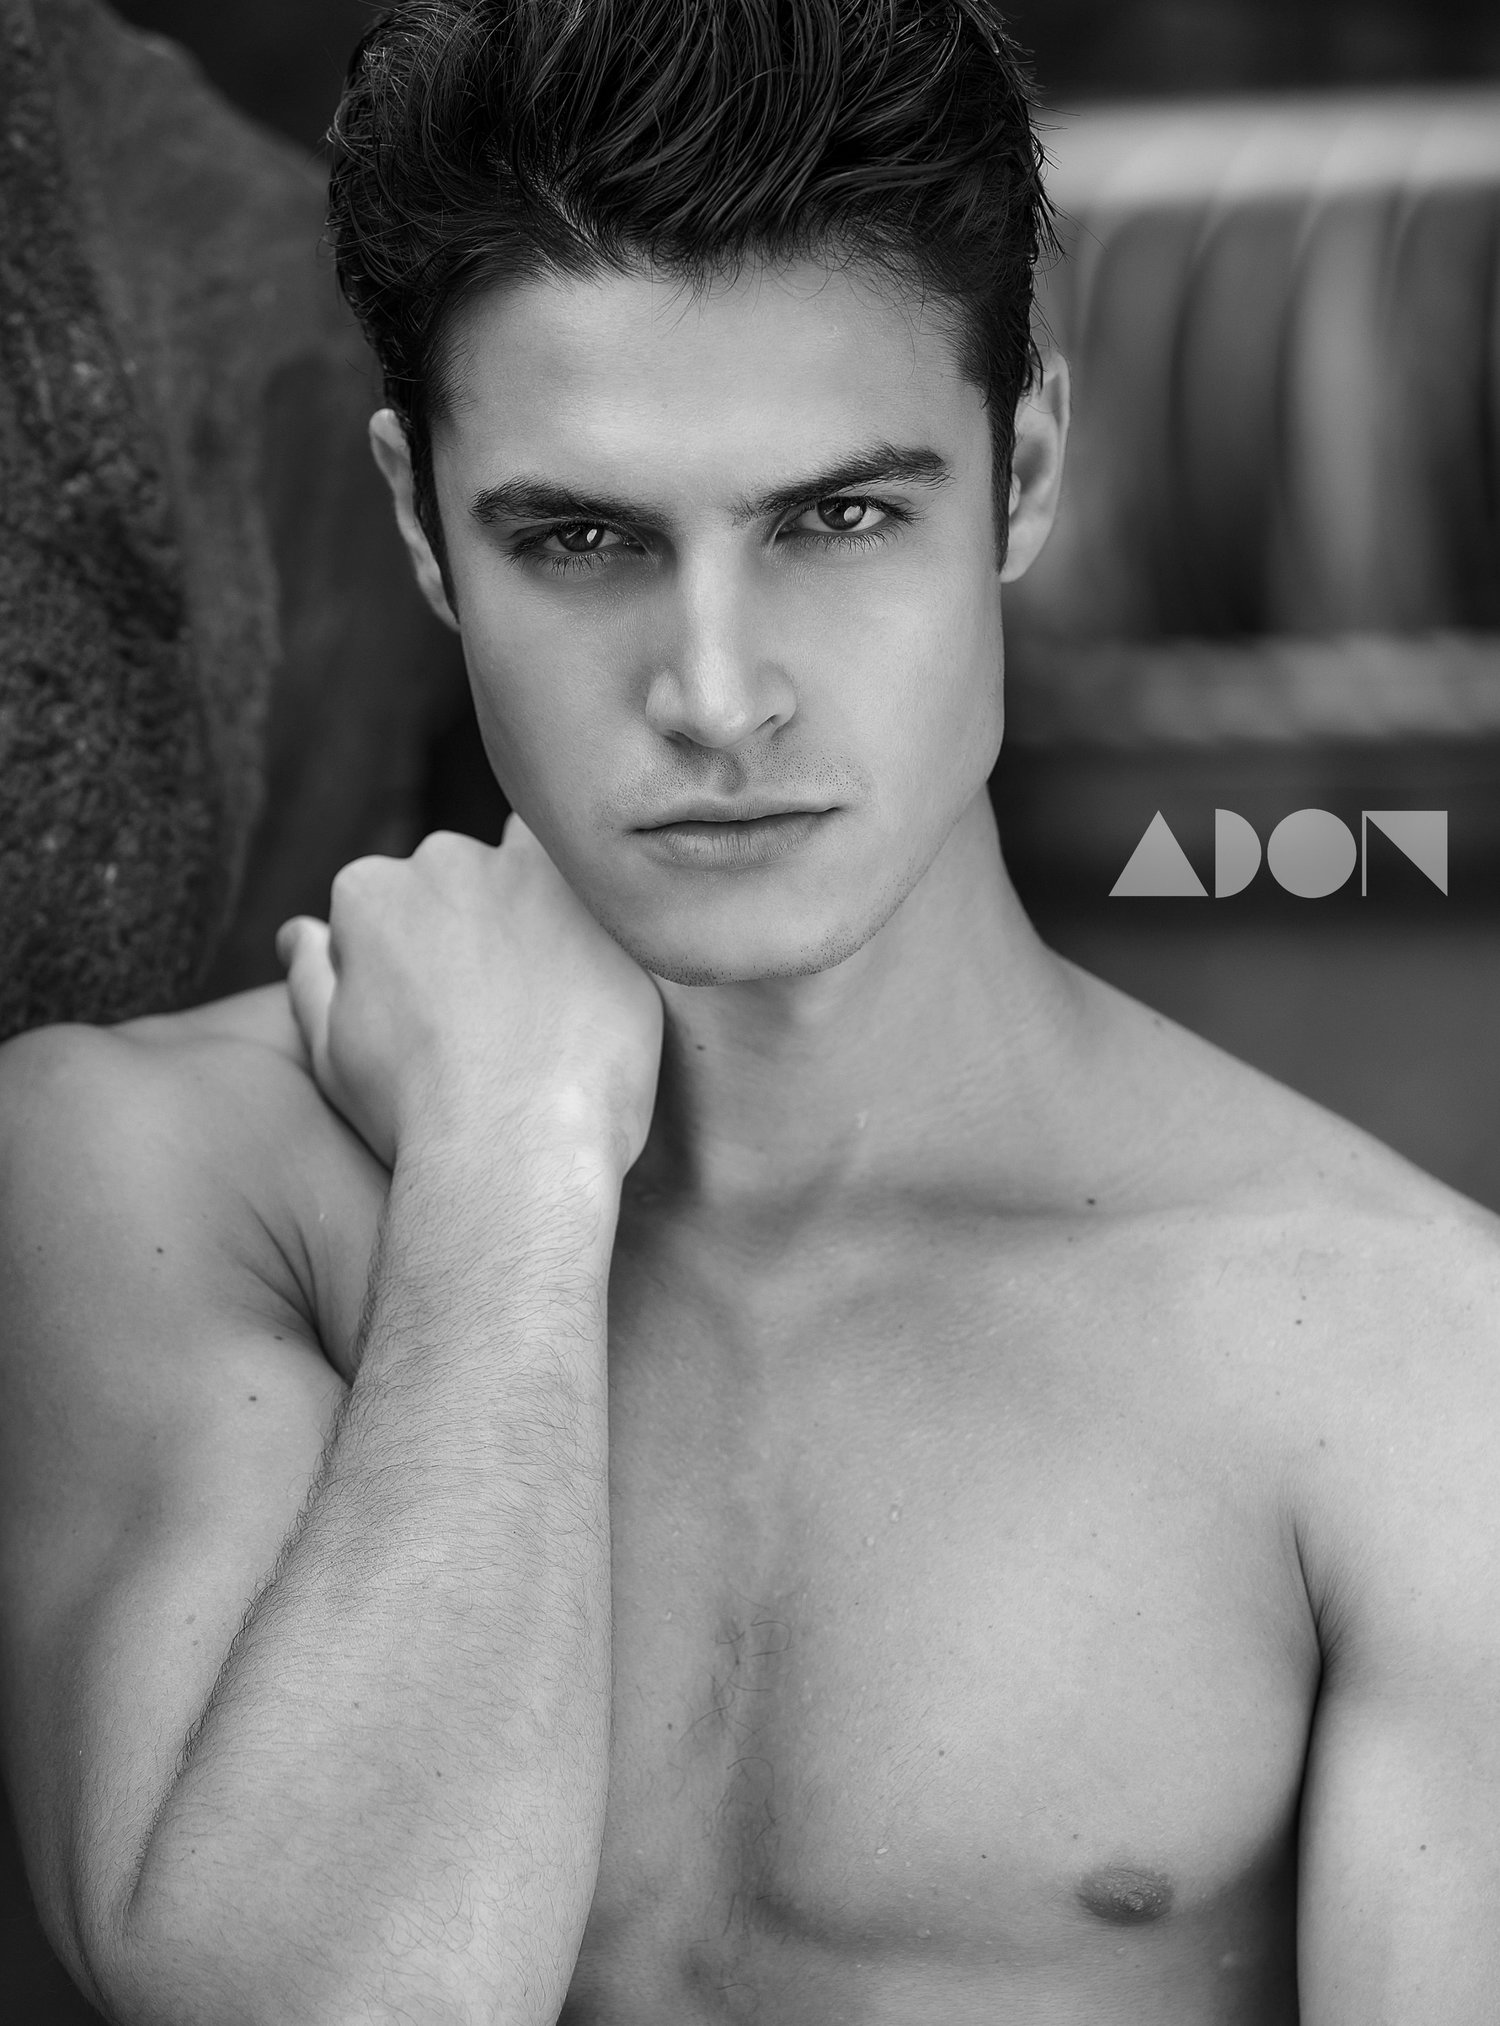 Adon Exclusive: Model Luka Skocilic By Jason Oung